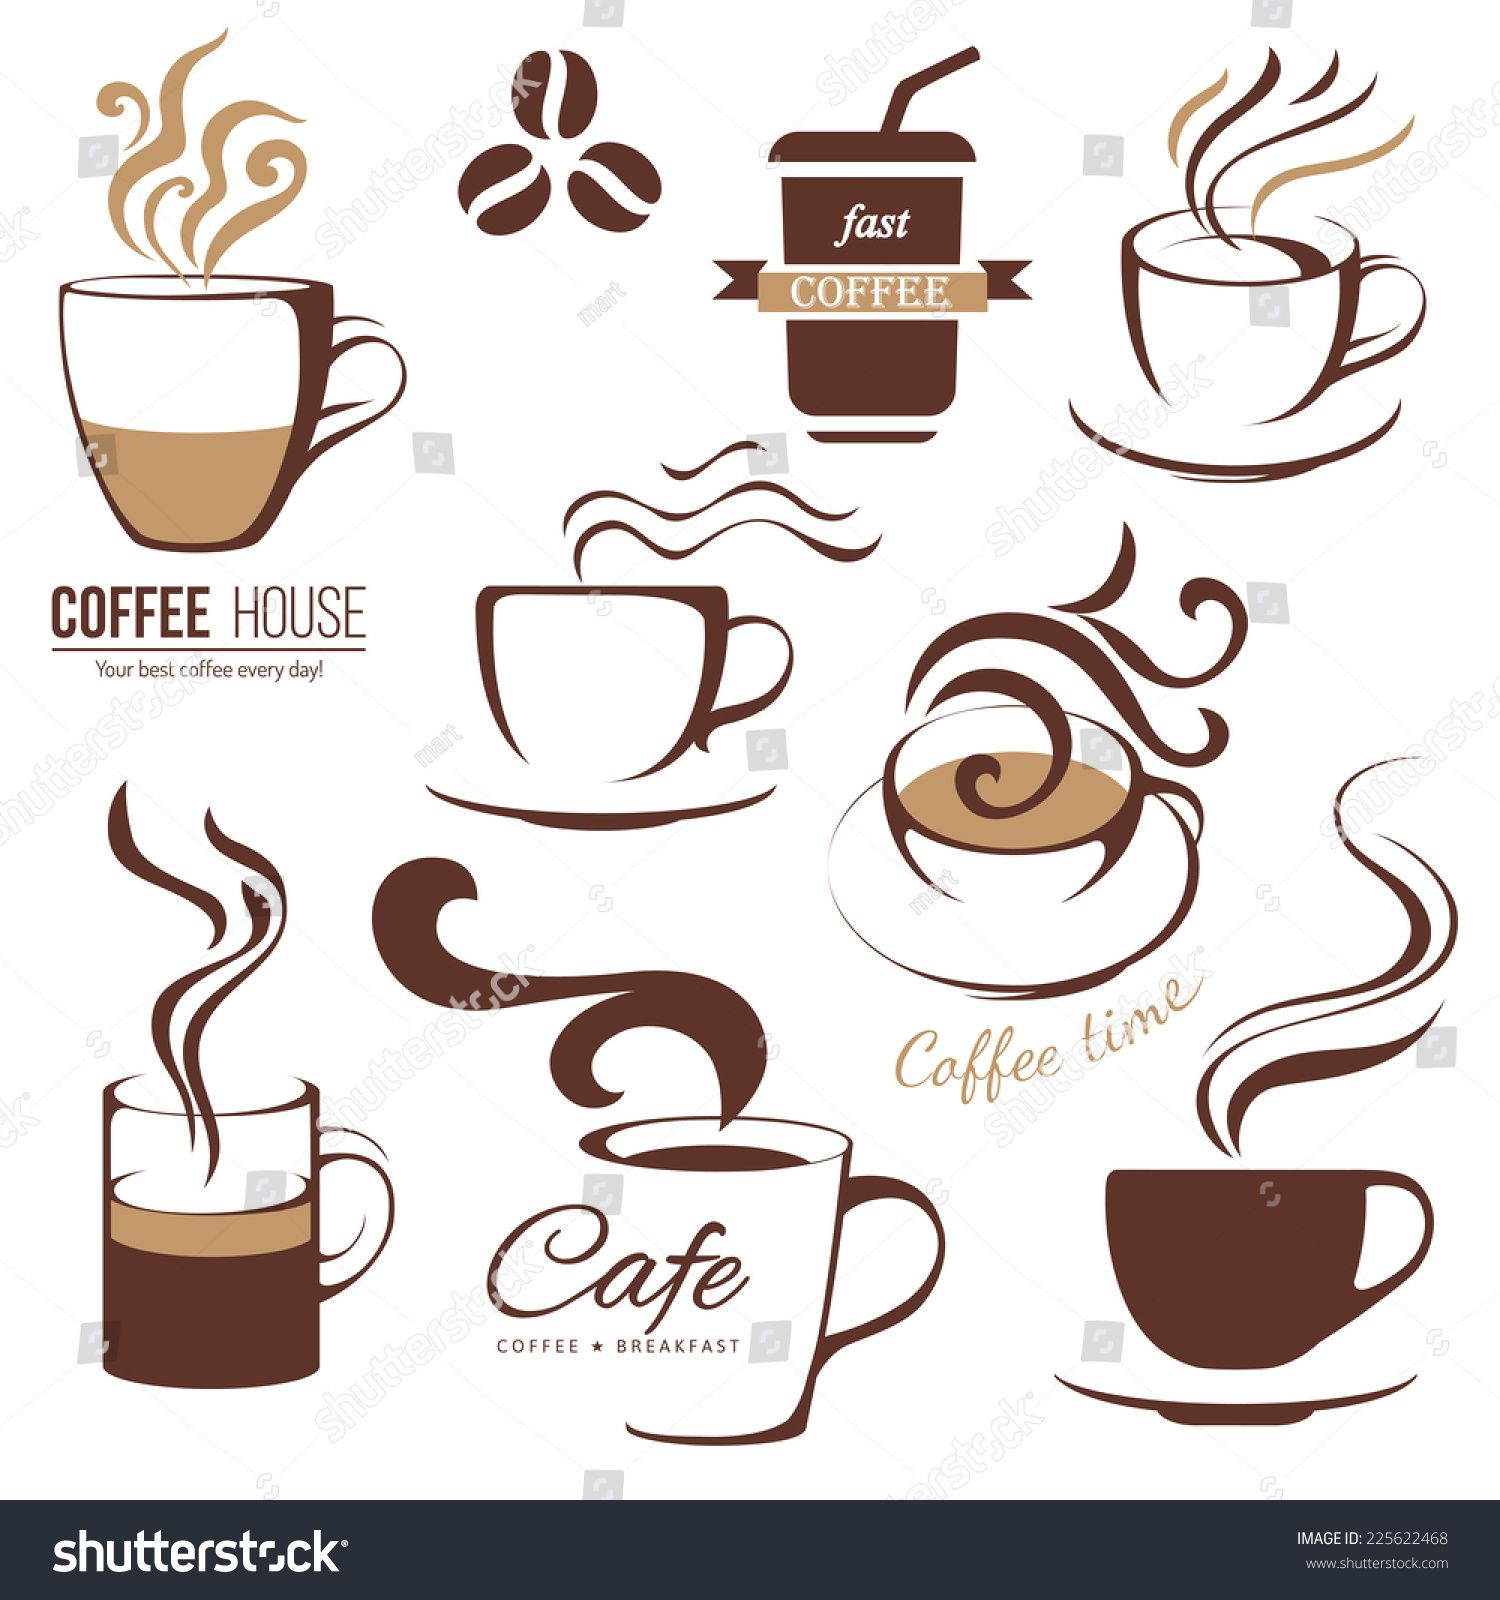 Coffee And Cafe Logo Templates Set Ad Ad Cafe Coffee Logo Set Coffee Art Coffee Logo Coffee Cup Design